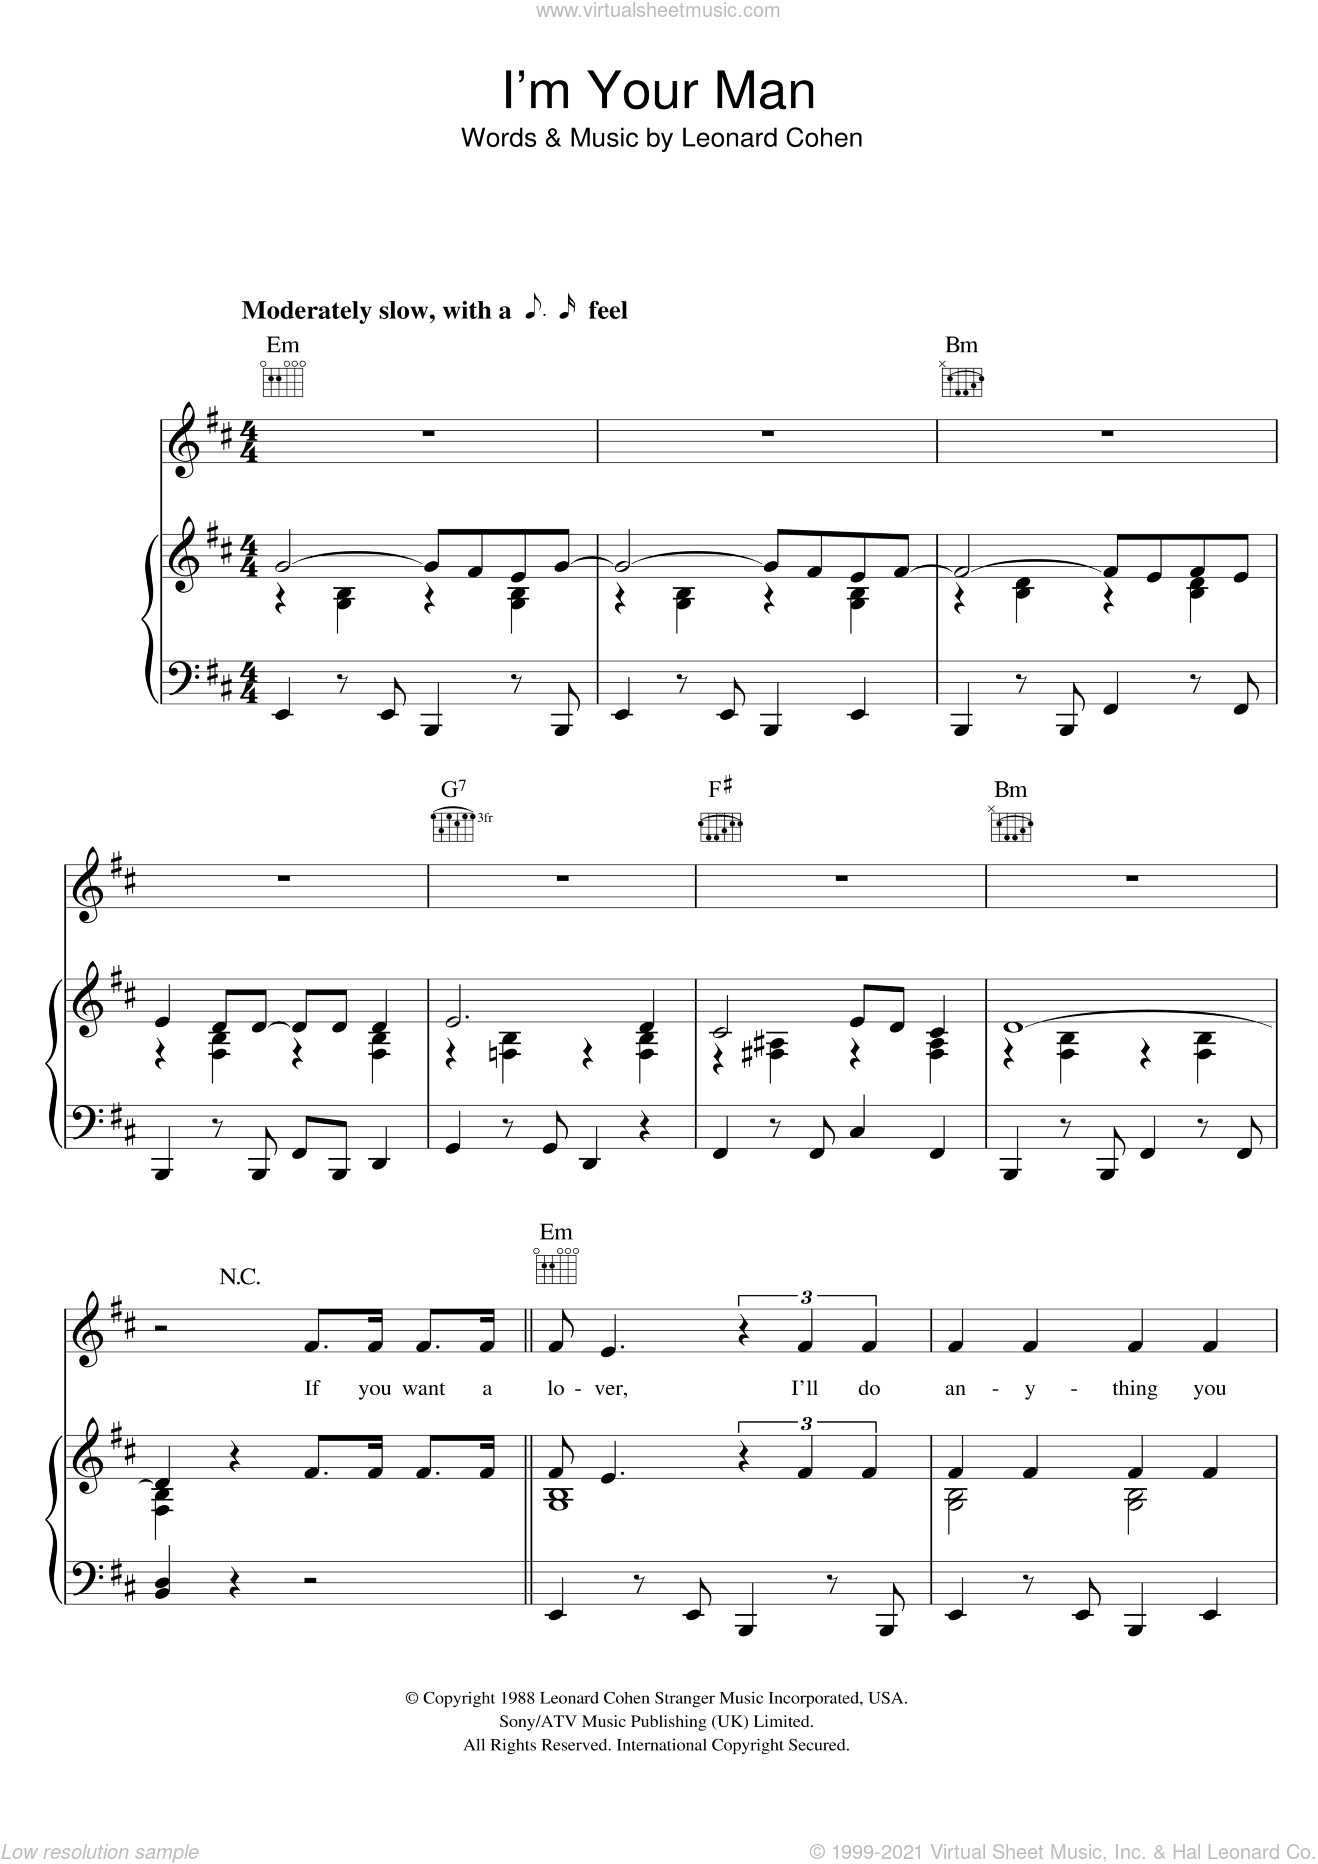 I'm Your Man sheet music for voice, piano or guitar by Leonard Cohen. Score Image Preview.